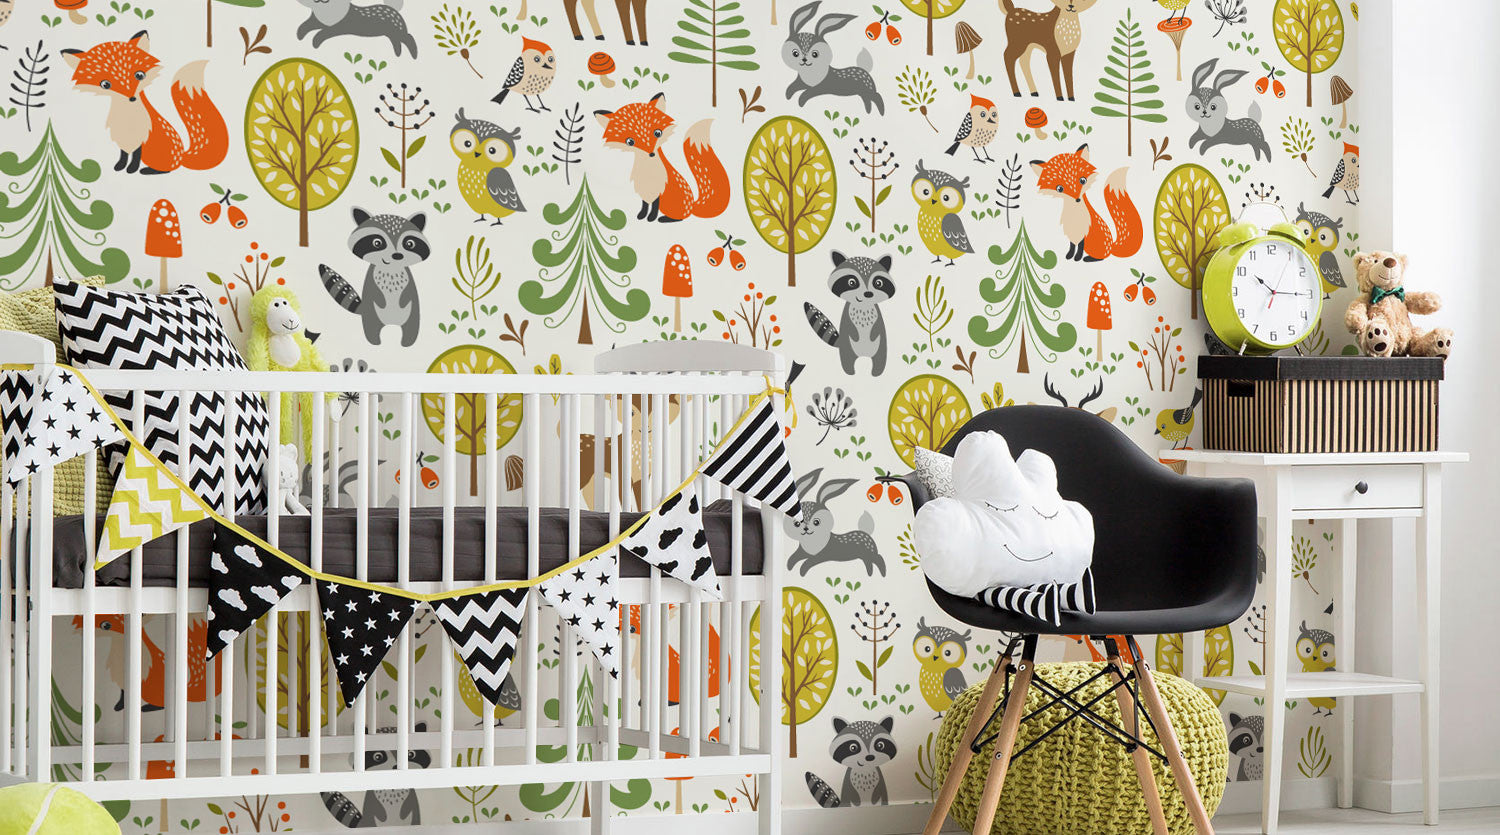 Nursery wall murals eazywallz nursery wall murals amipublicfo Image collections